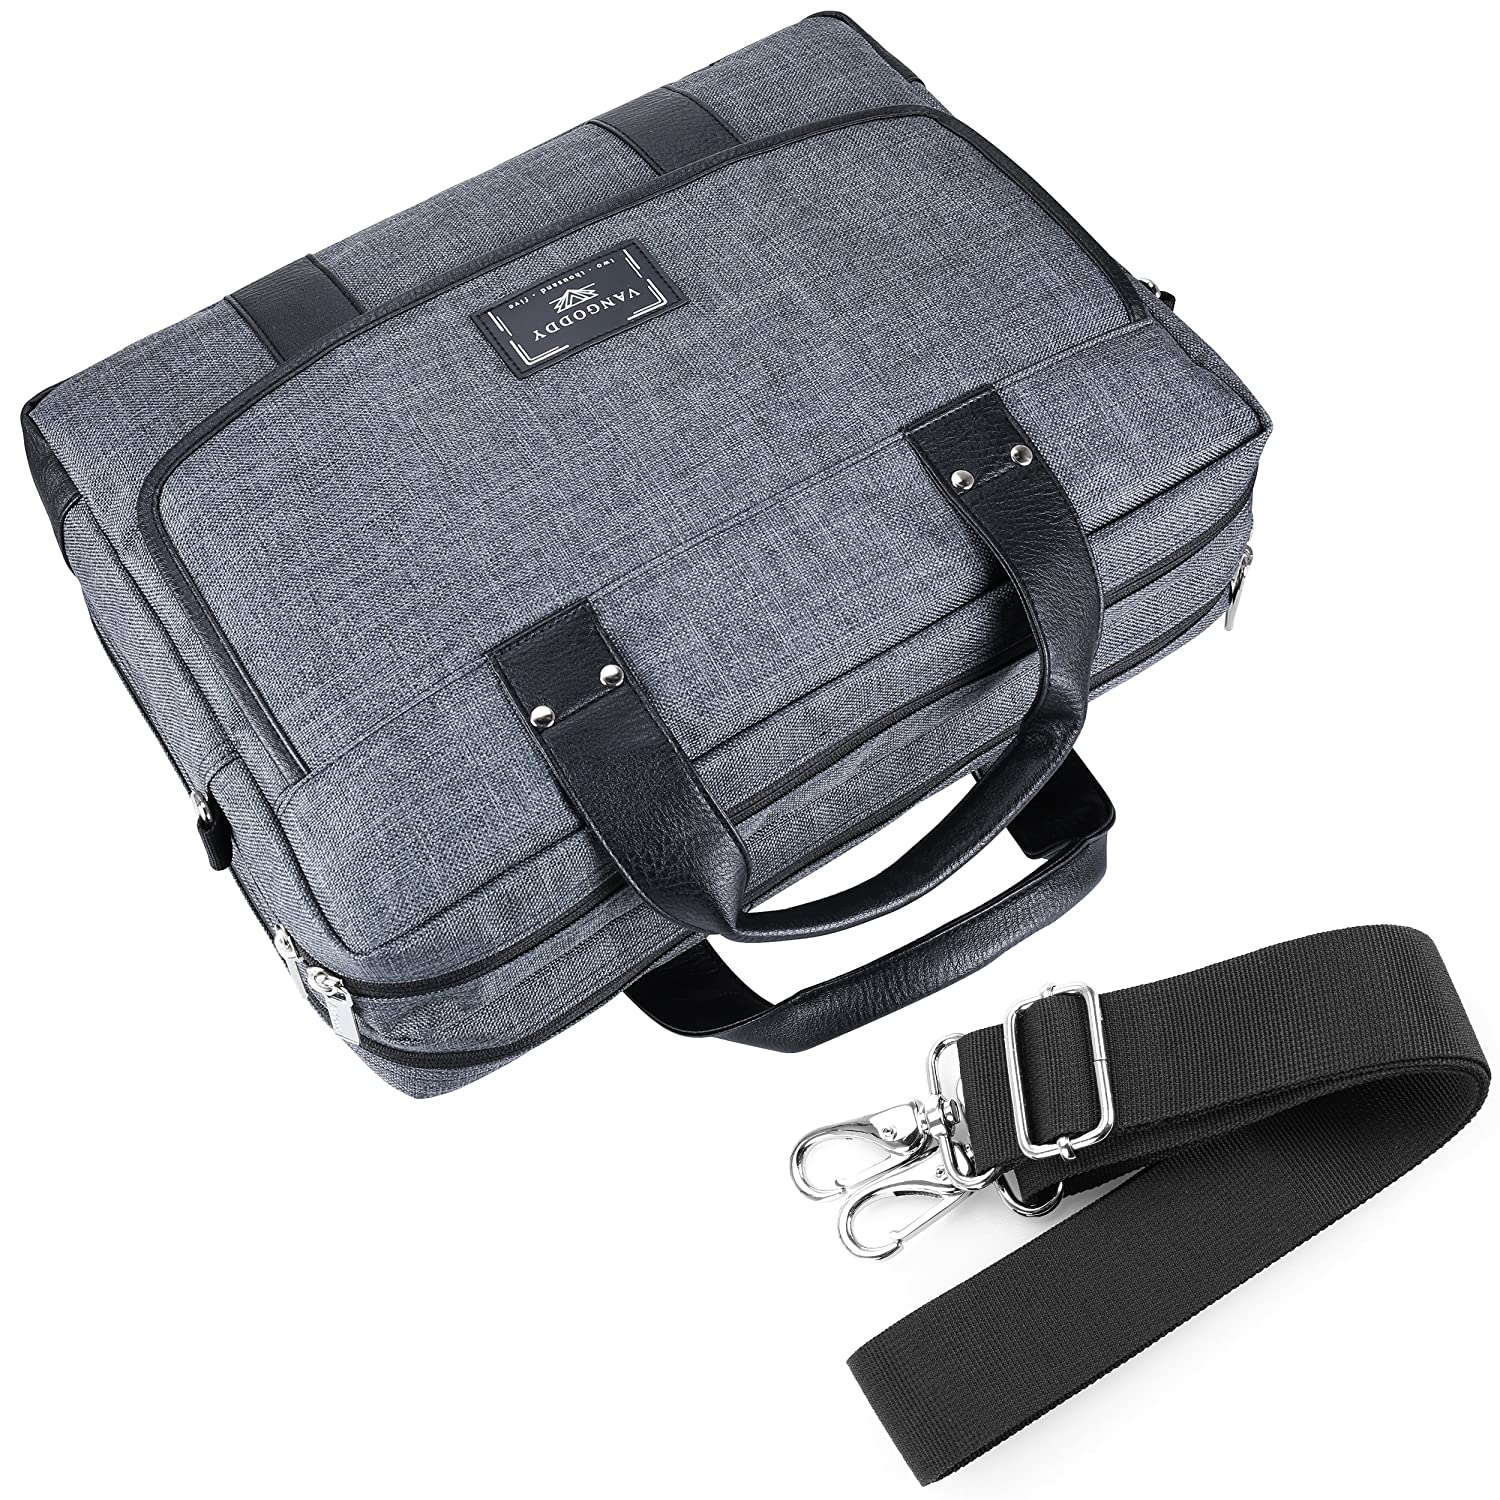 Alienware M17 Inspiron WGS Water Resistant Laptop Shoulder Bag Briefcase Crossbody Tote for Dell Precision Vostro G7 15 Latitude and Wireless Mouse with Headphone